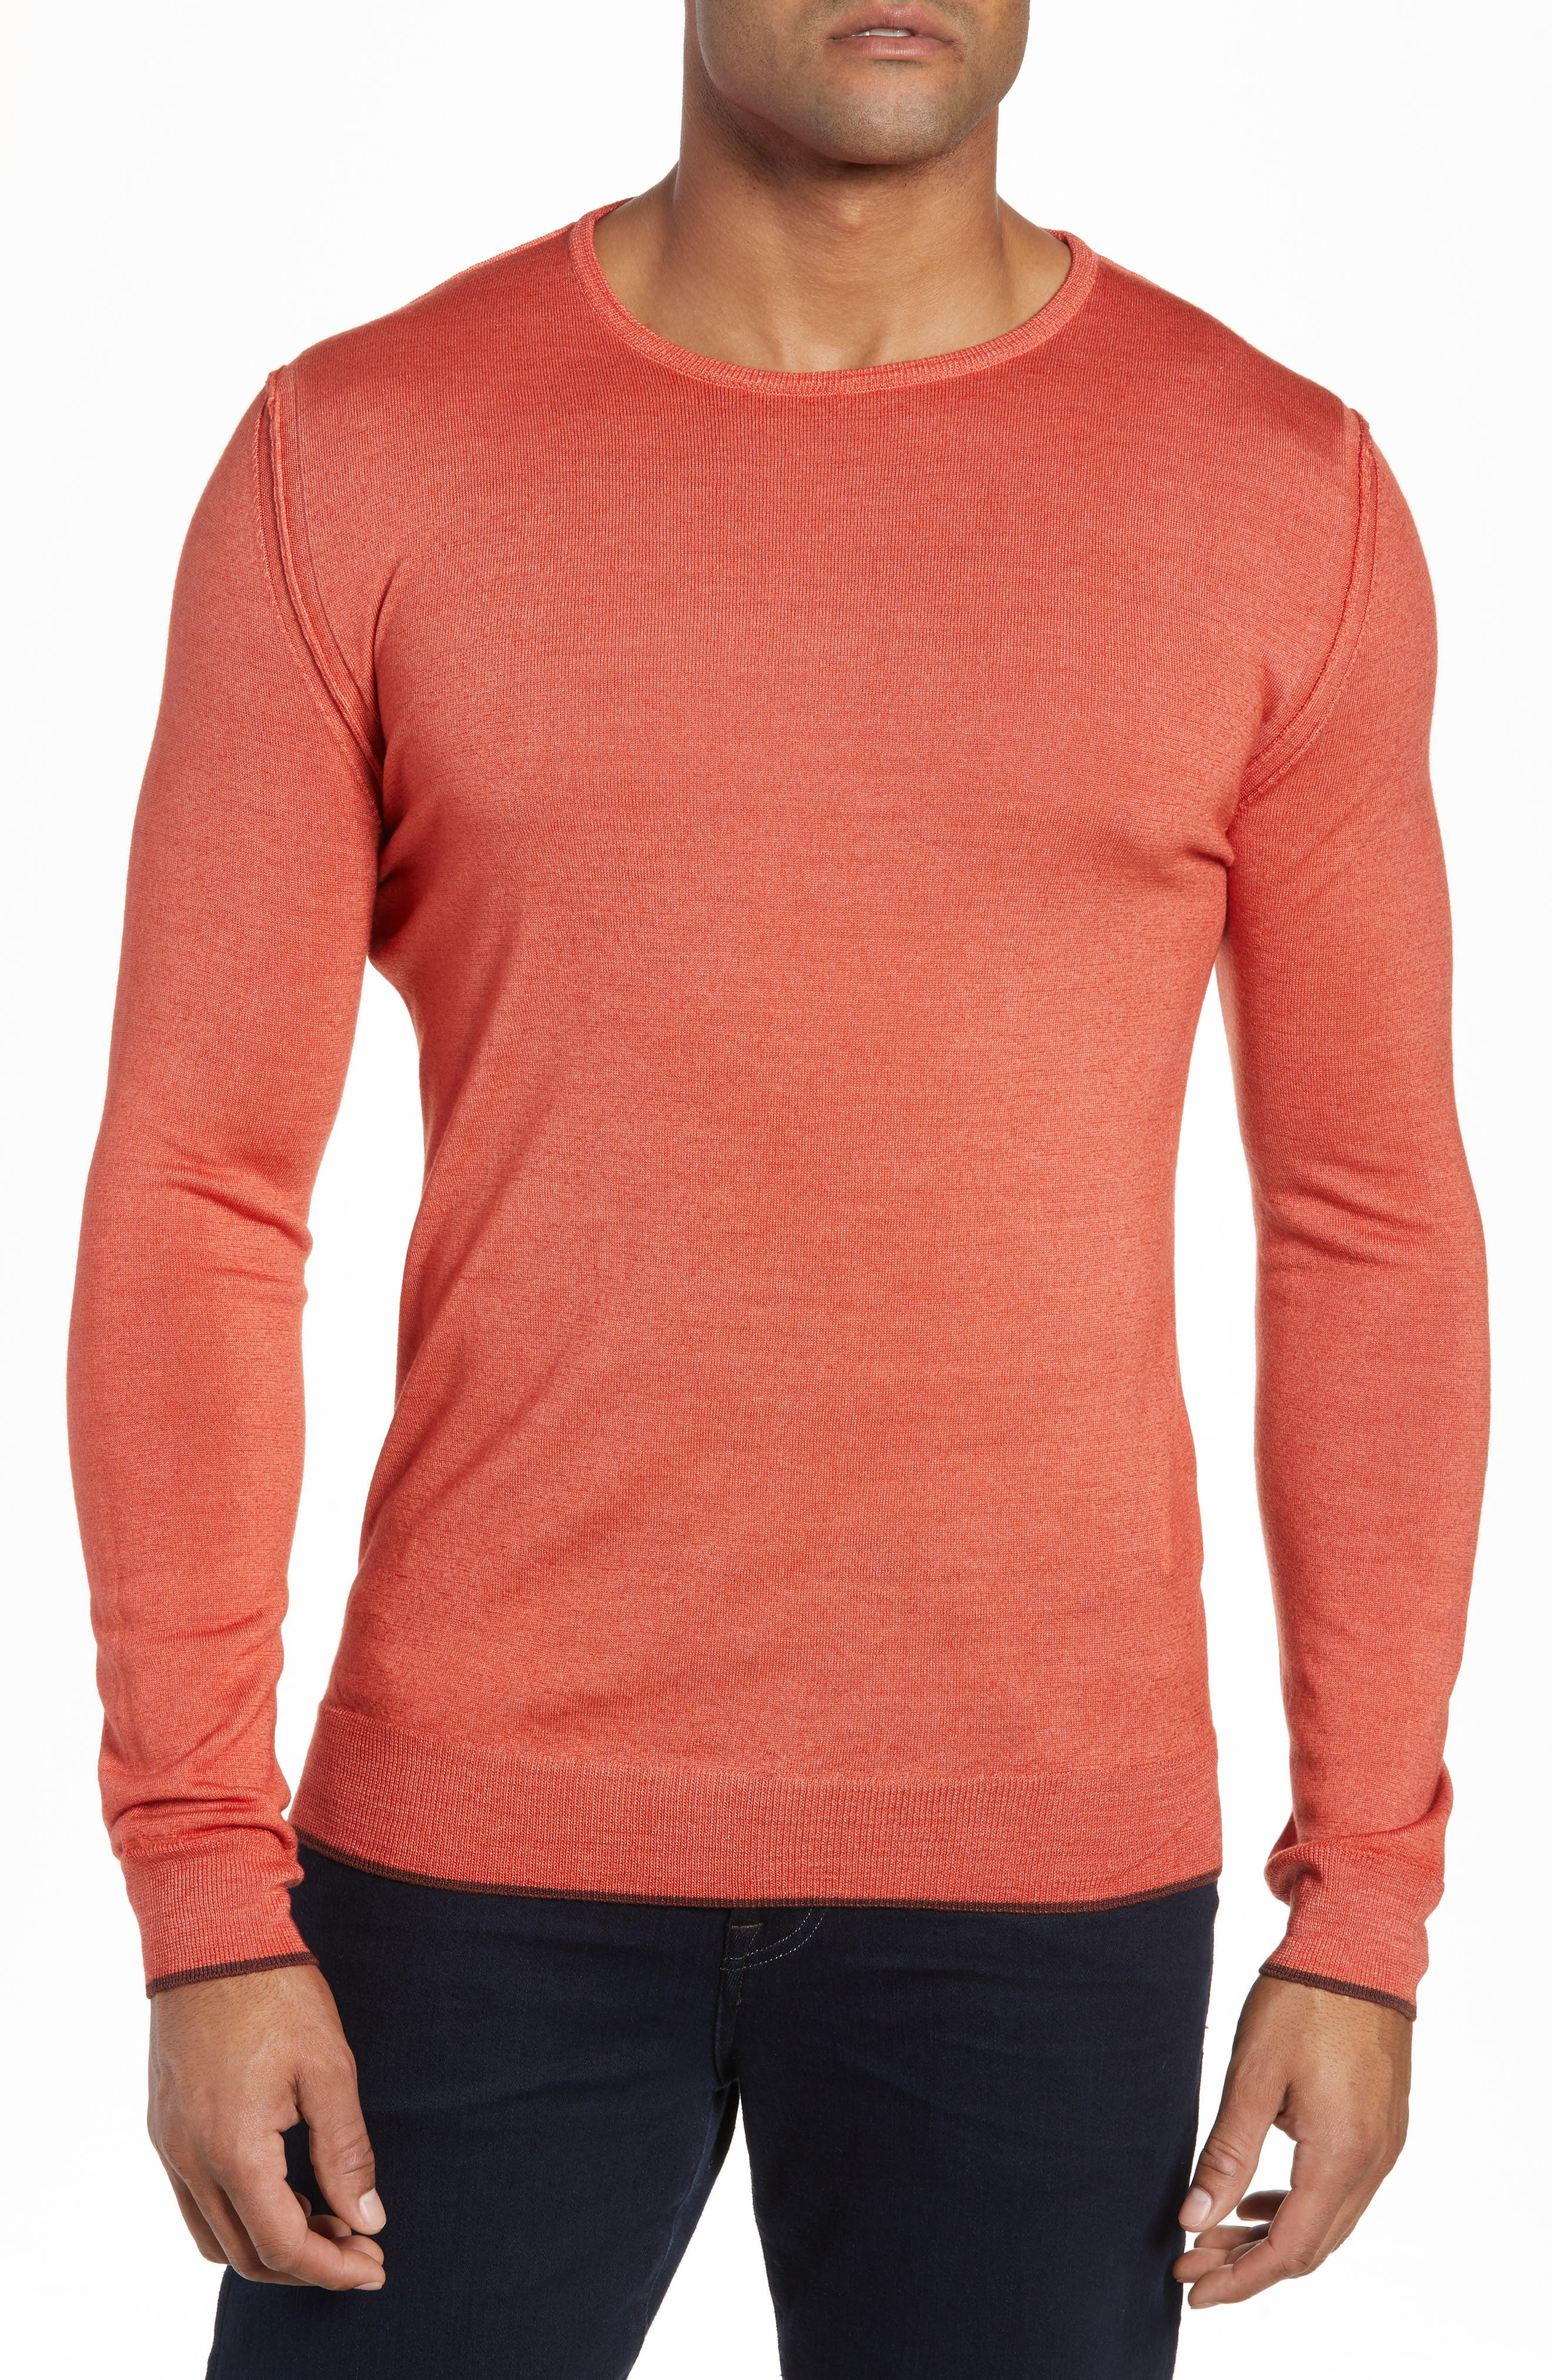 Trim Fit Crewneck Wool Sweater,                             Main thumbnail 1, color,                             ORANGE